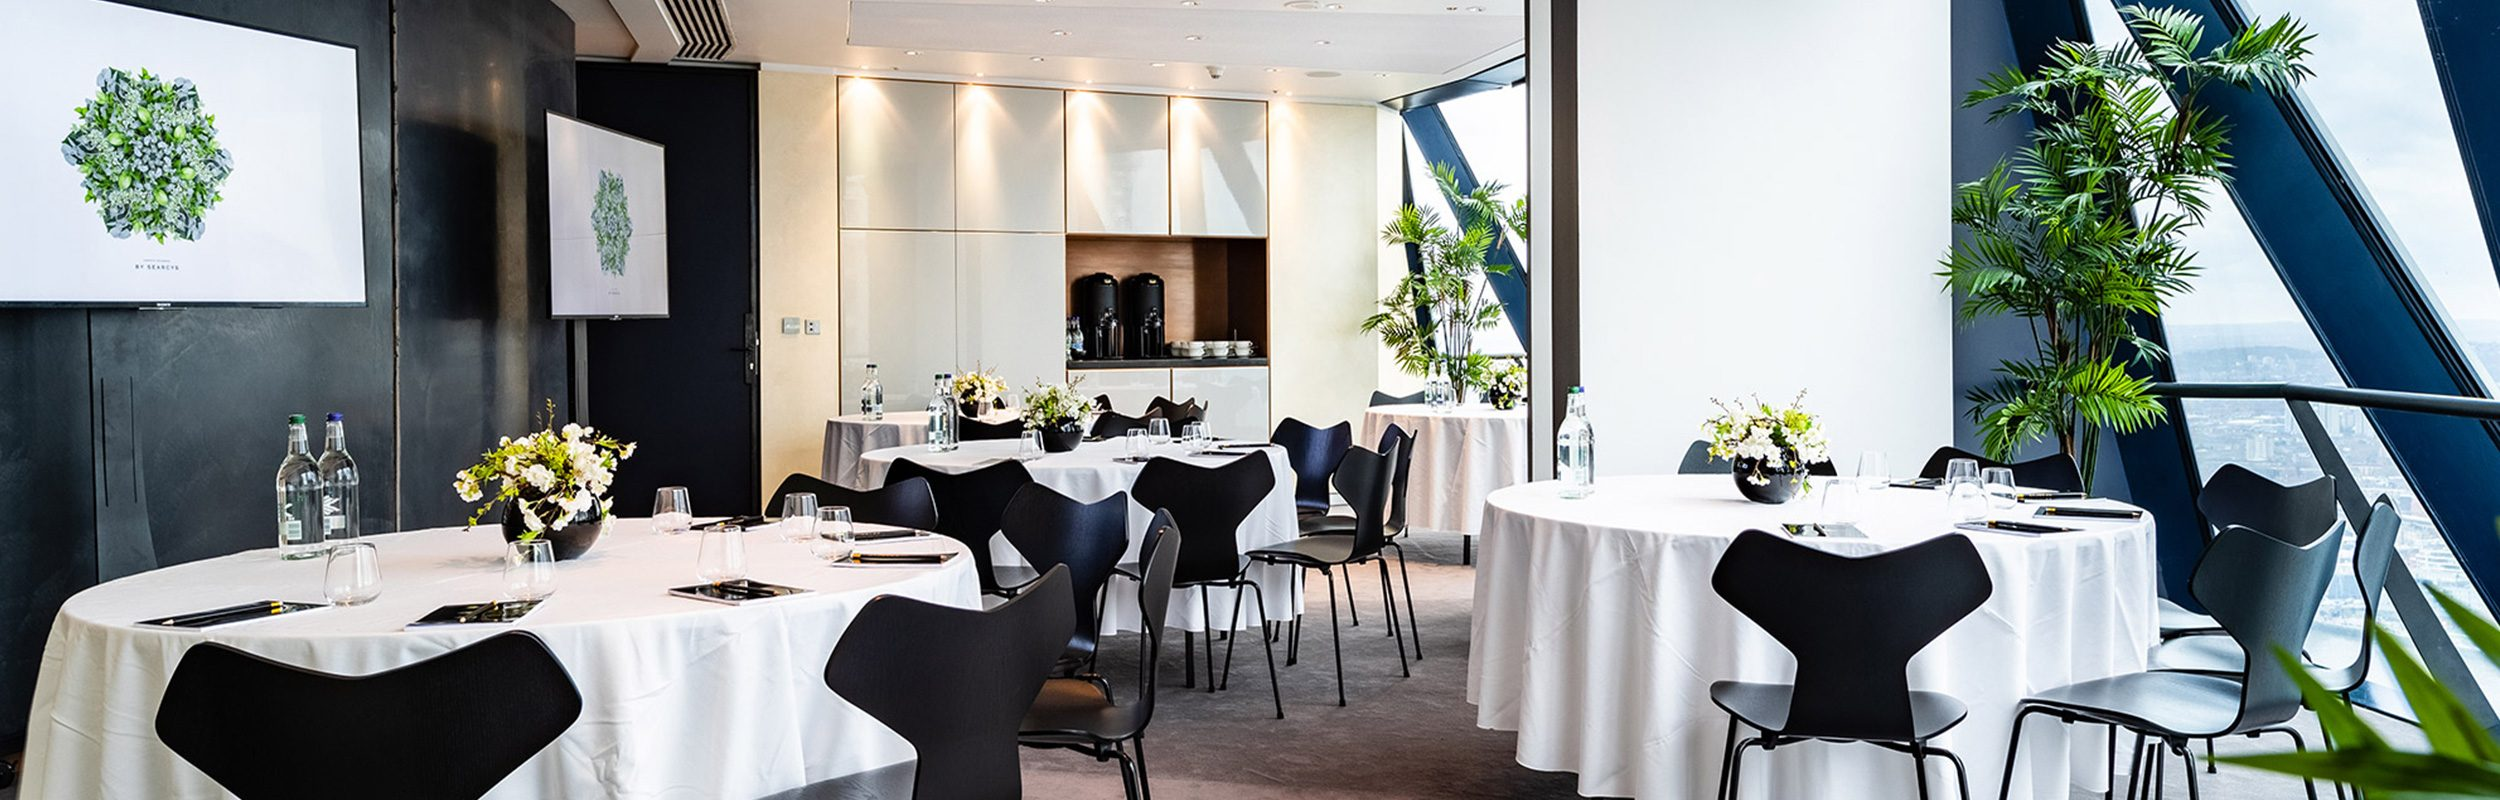 Corporate Events - Searcys at the Gherkin